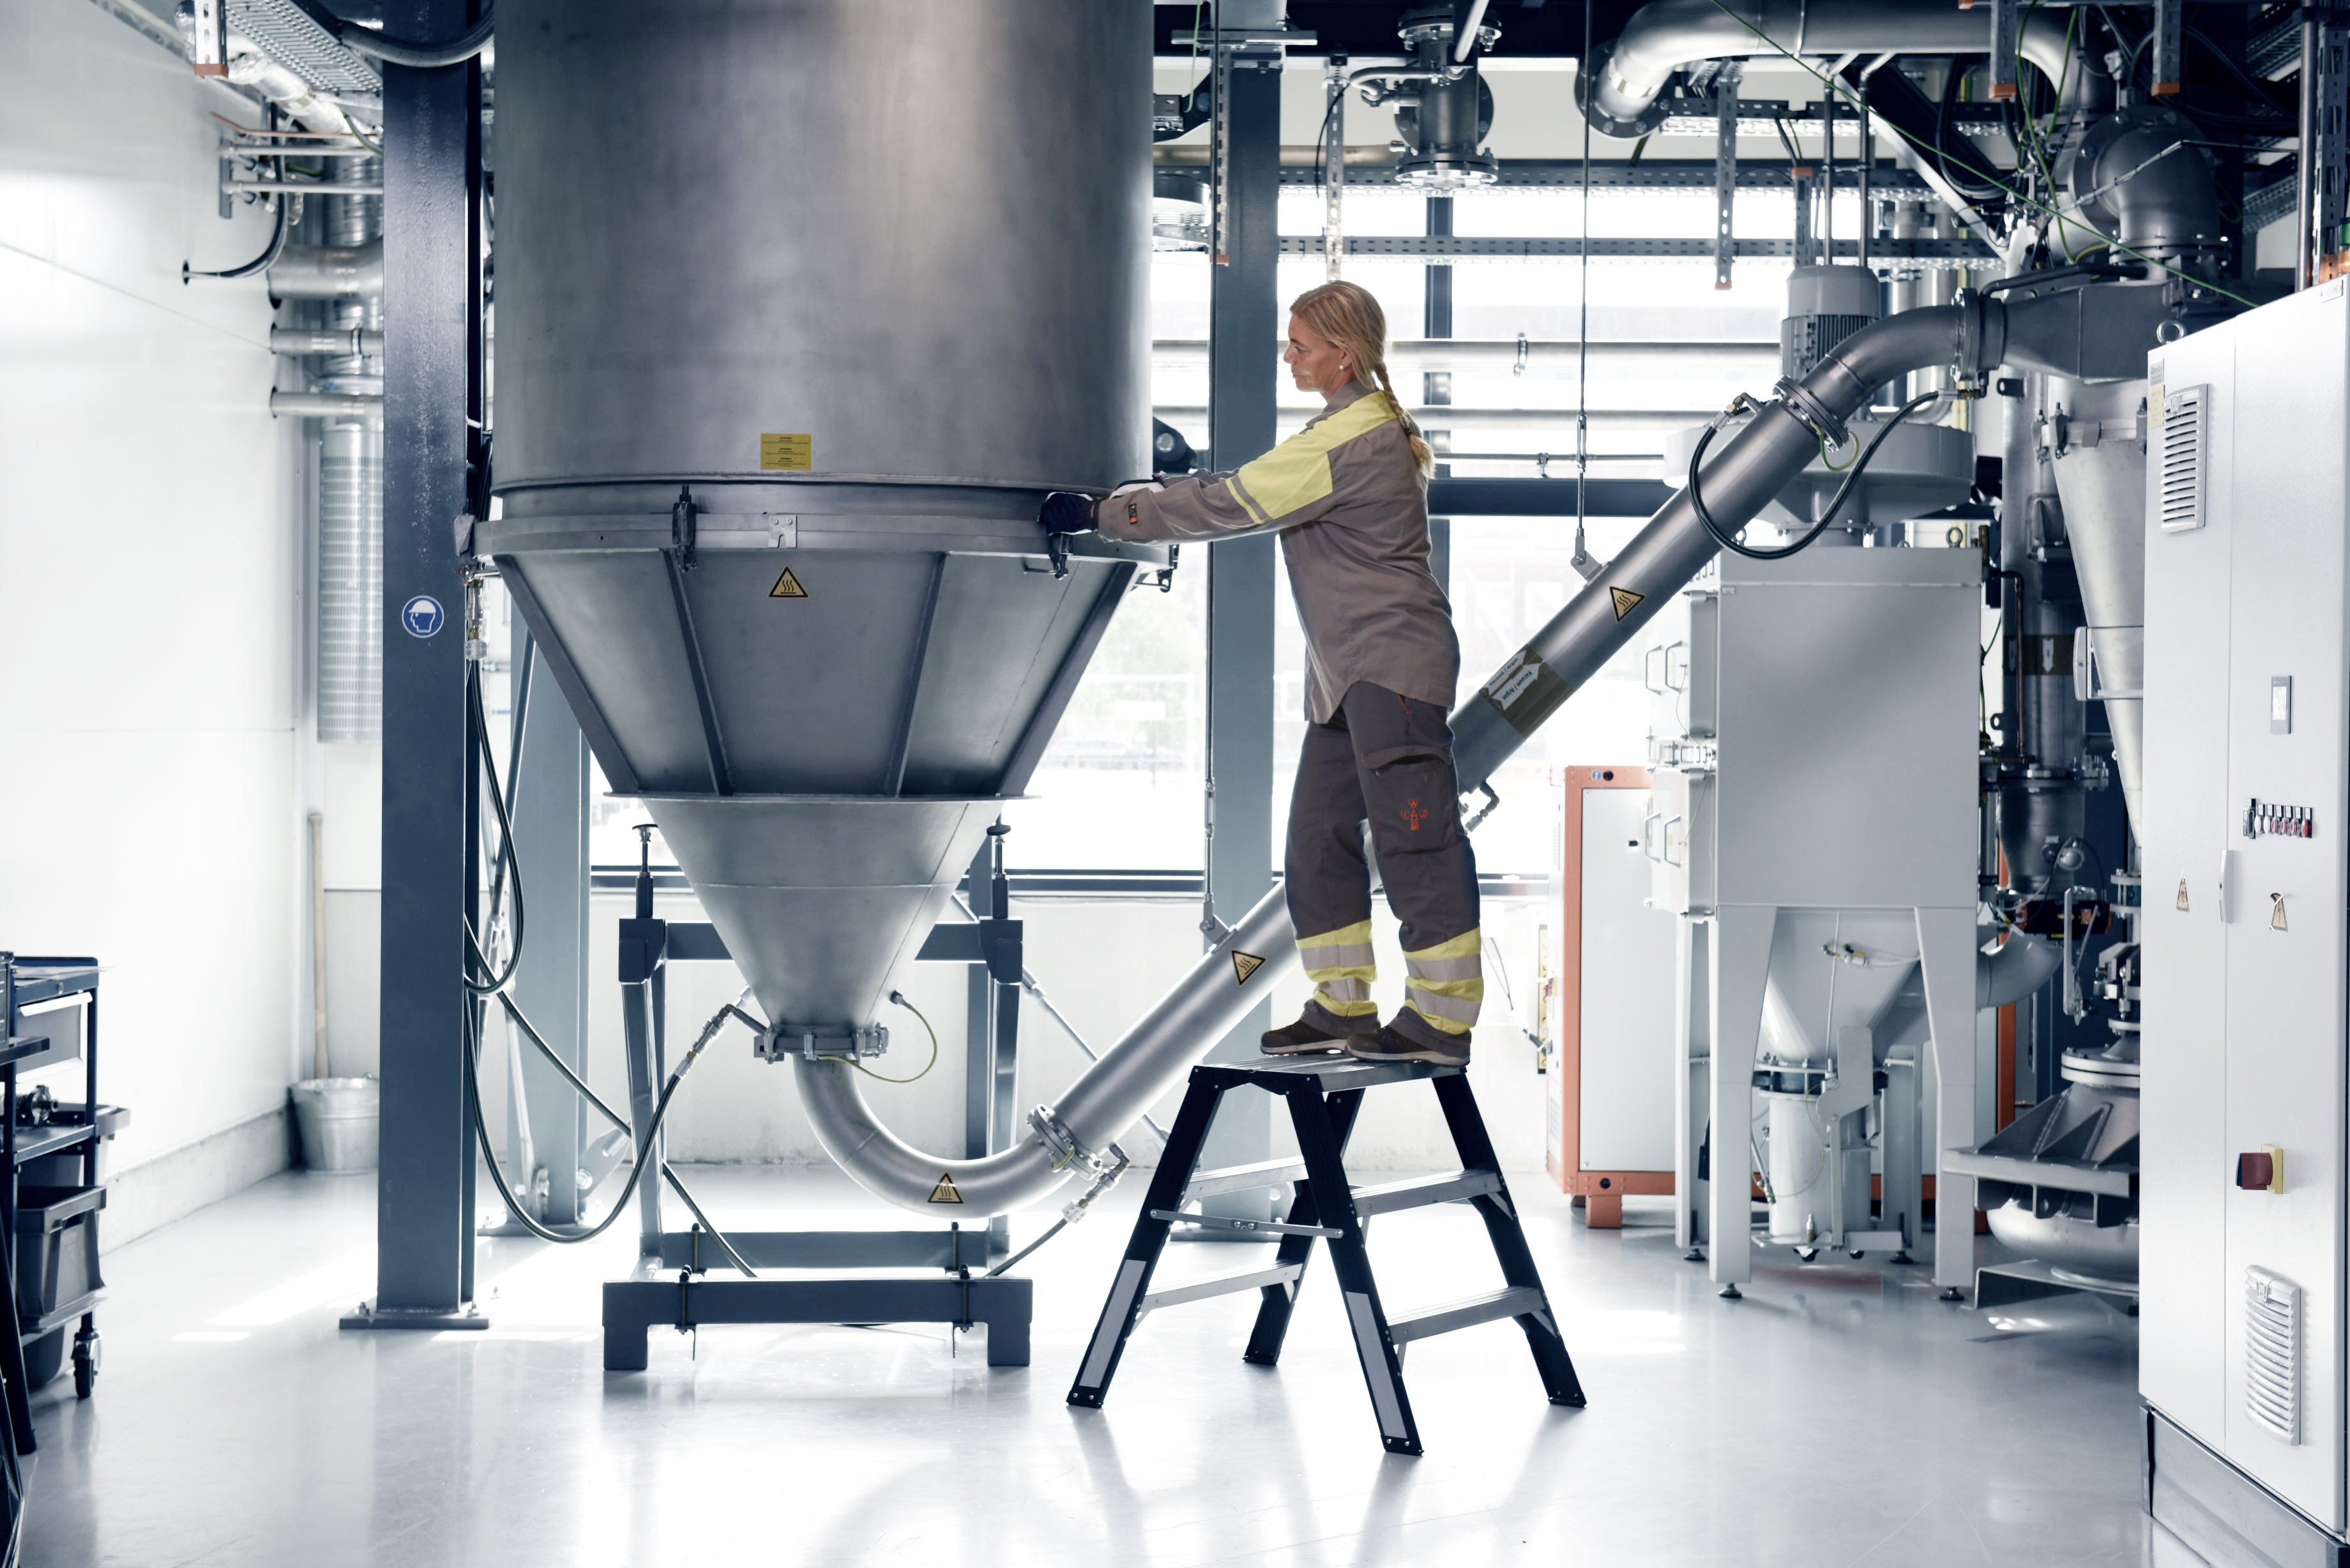 Sandvik agreed to become part of the Beta Partner Program and provide its expertise in 3D printing materials and post-processing methods such as metal cutting, sintering, and heat treatment. Image shows a titanium powder tower. Photo via Sandvik.